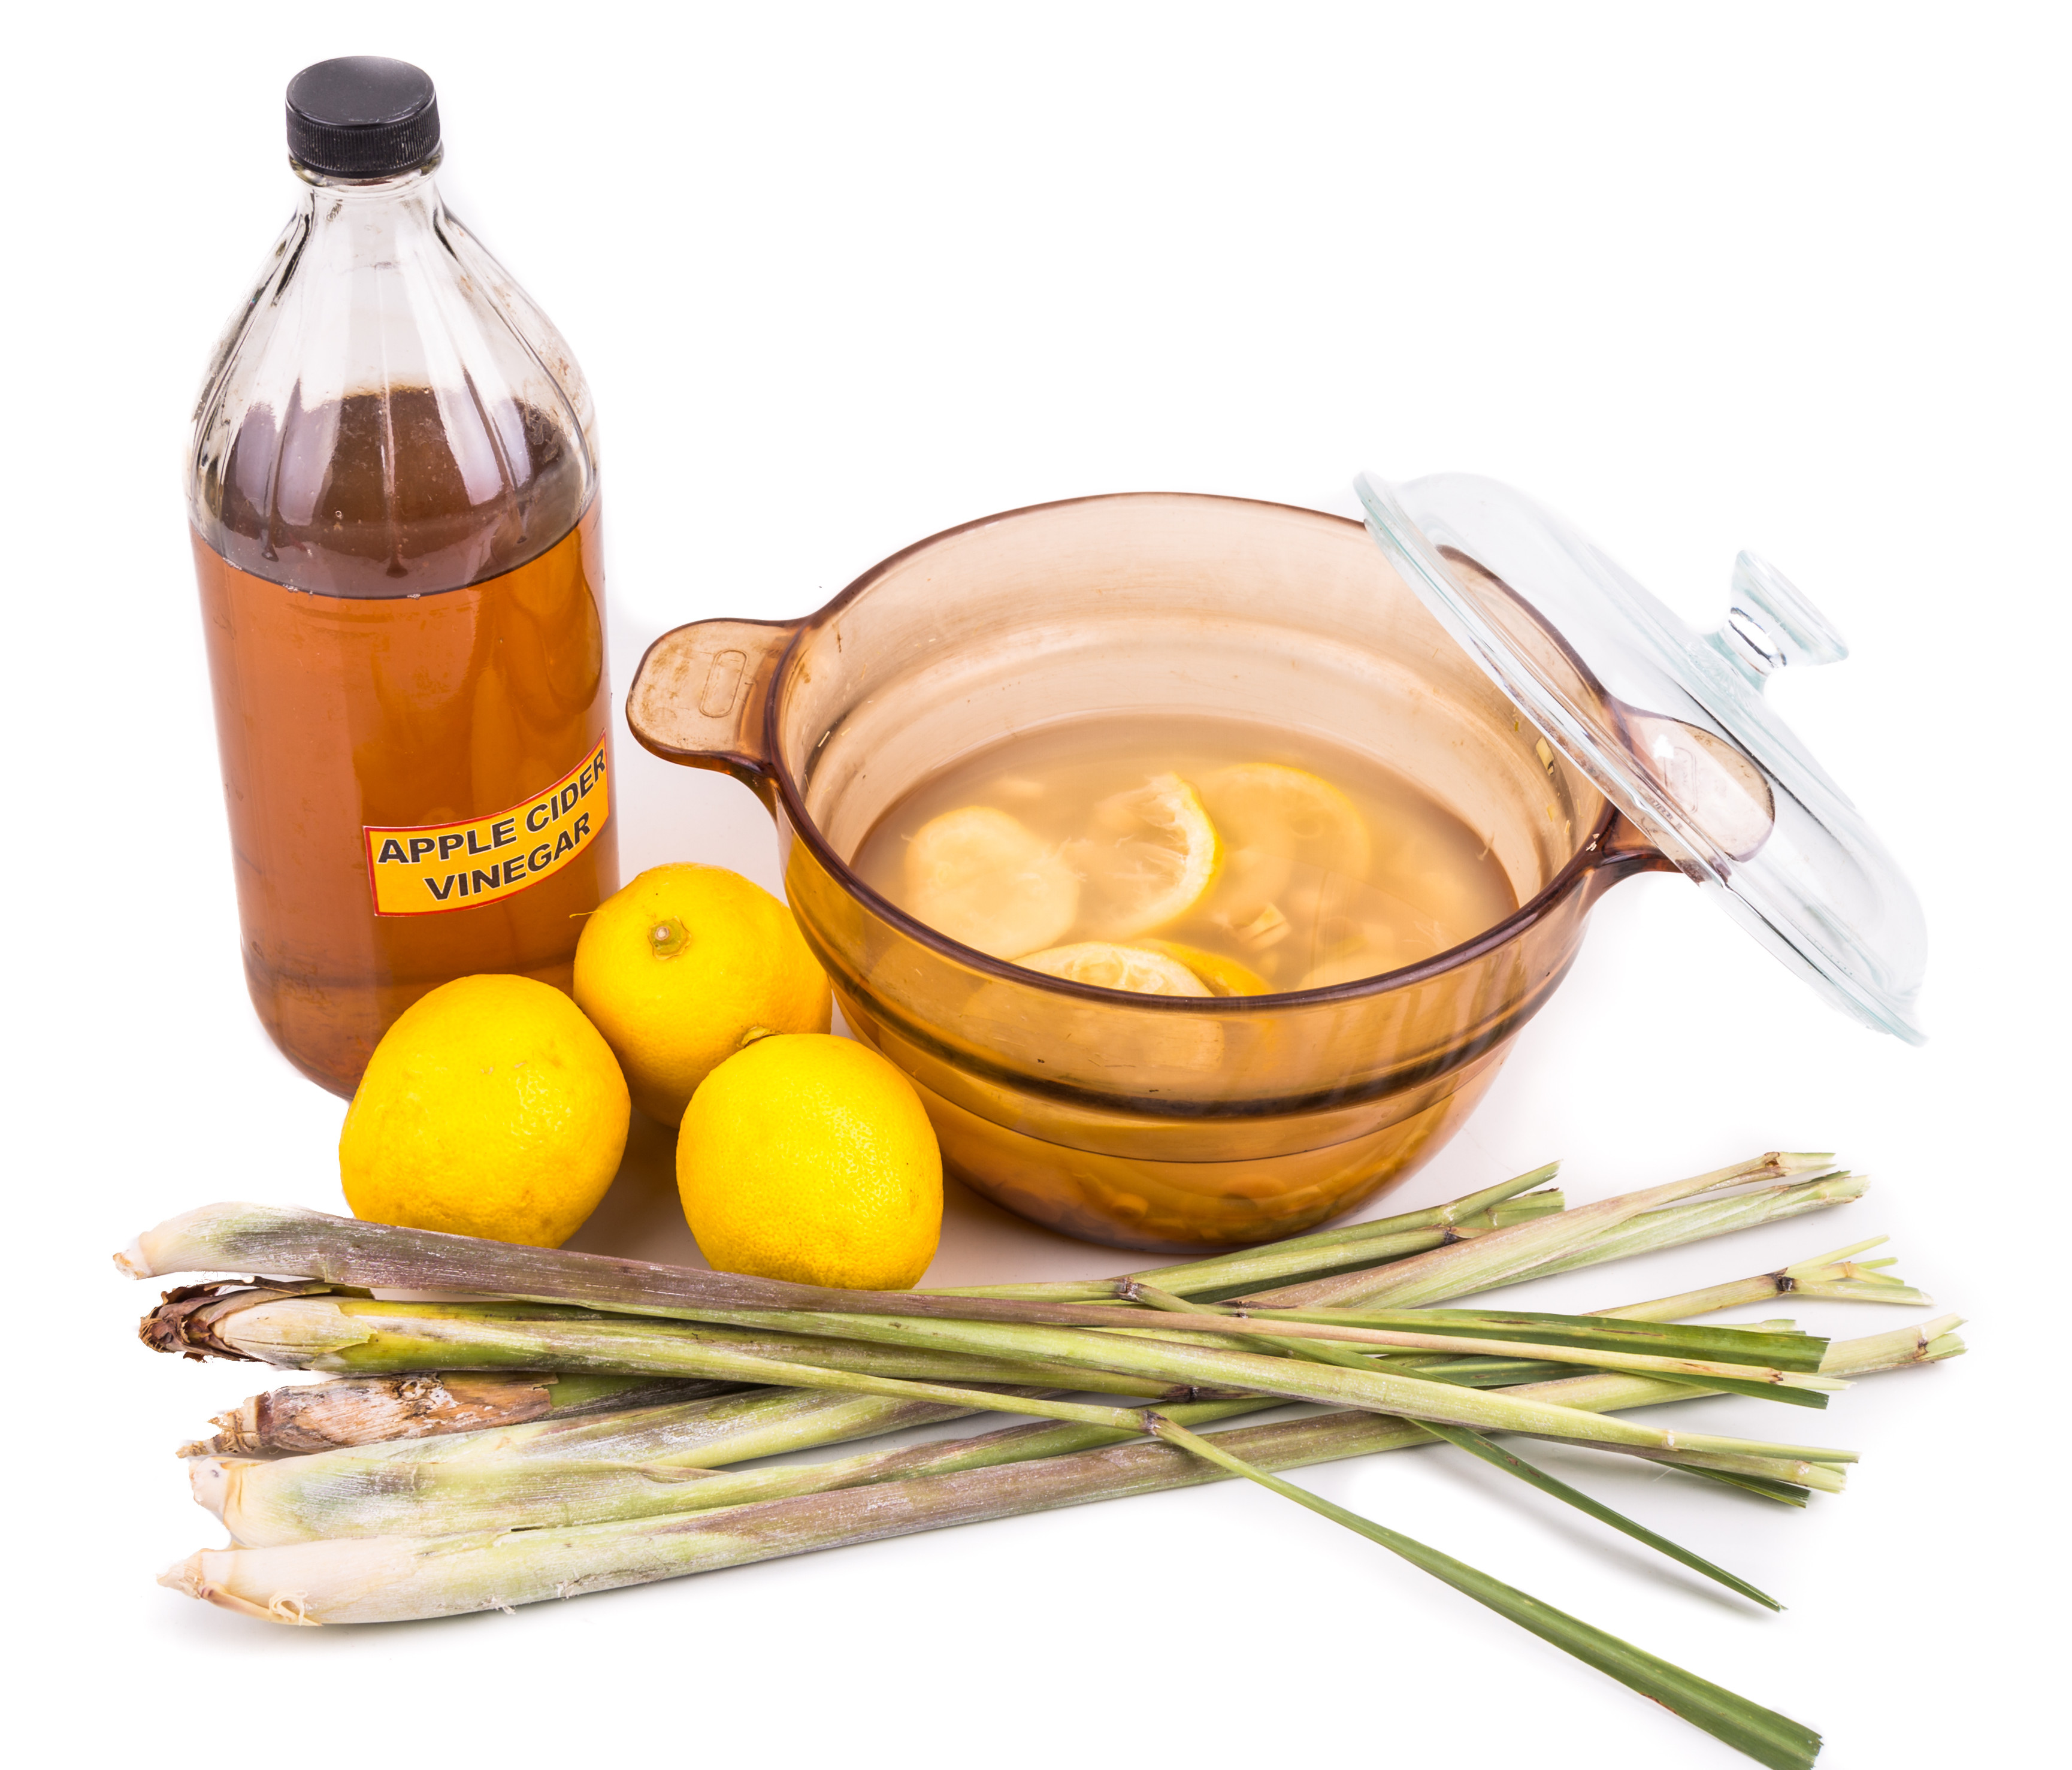 Apple cider vinegar, lemon and lemongrass home remedy, safe and effective formula to repel mosquito, fleas and bugs. It can be used to repel fleas from pets, and is can neutralize unpleasant odor from dogs.